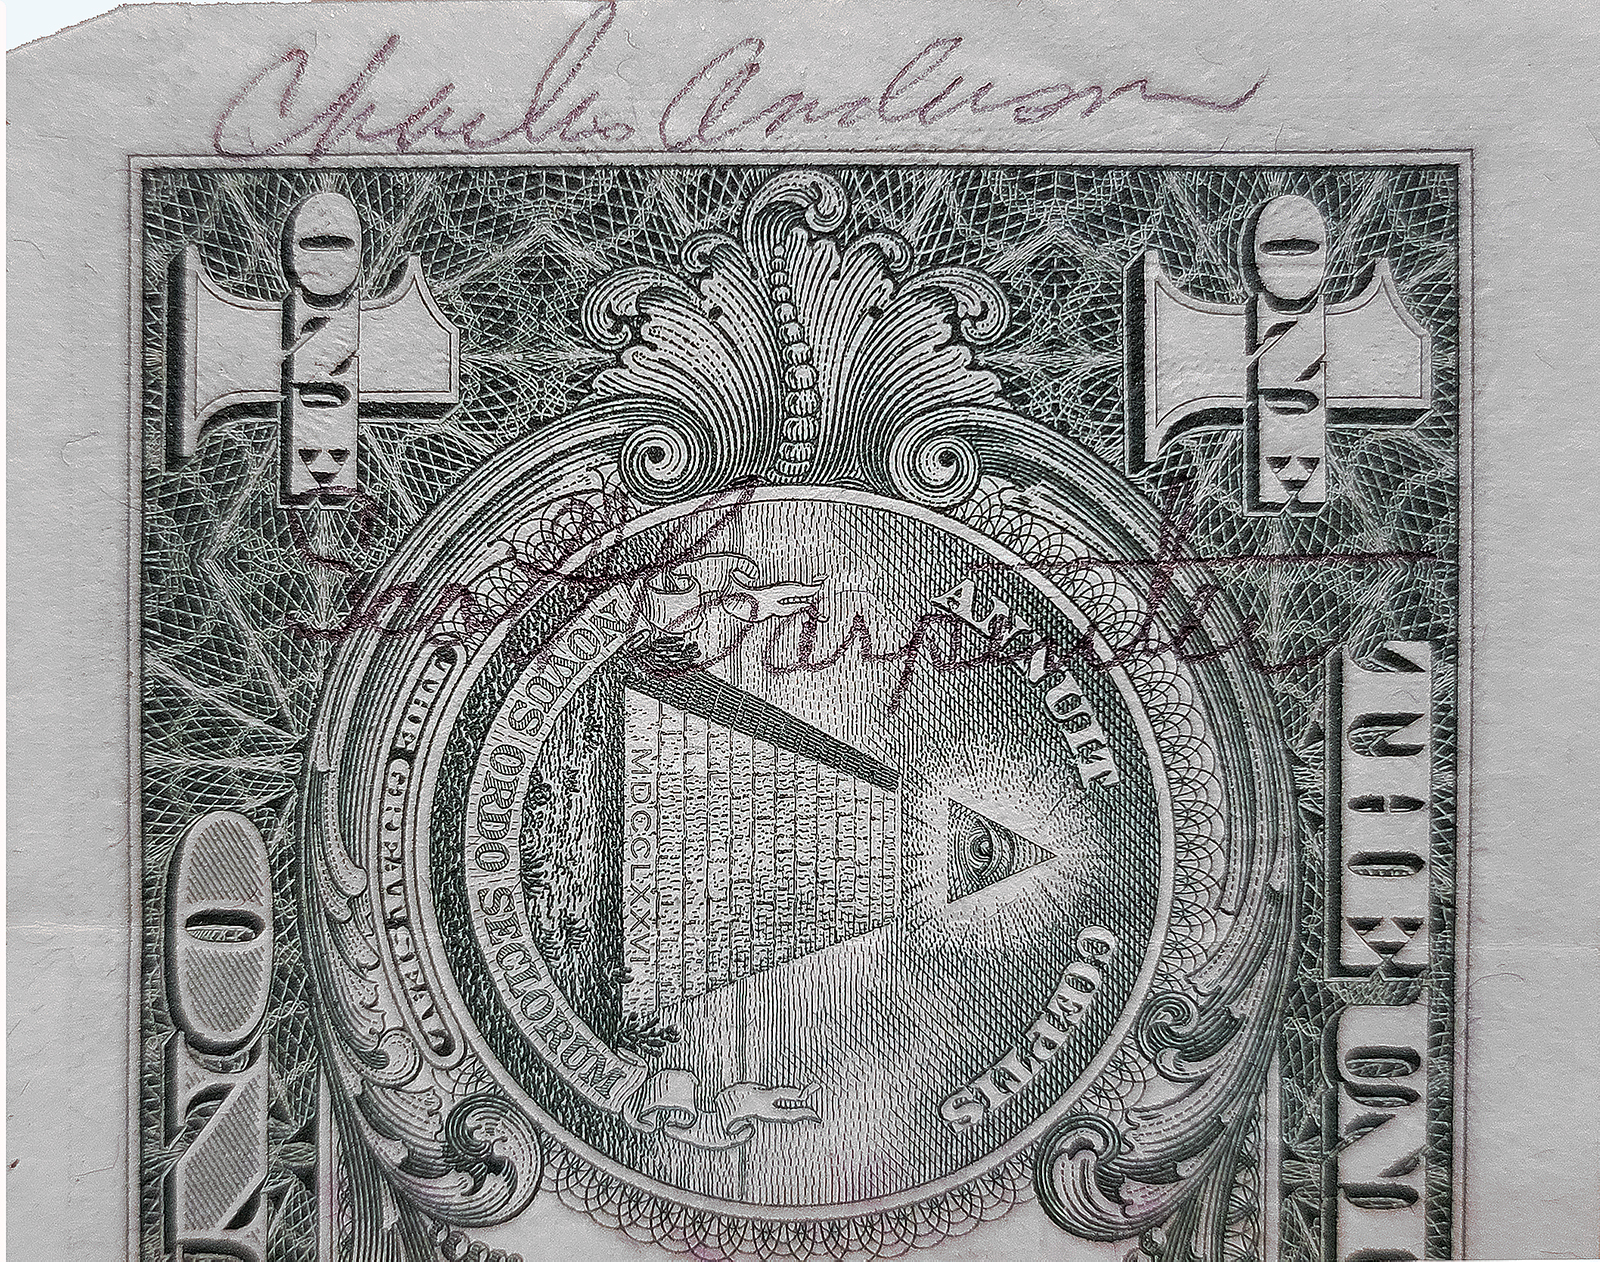 Photo of dollar bill with signatures